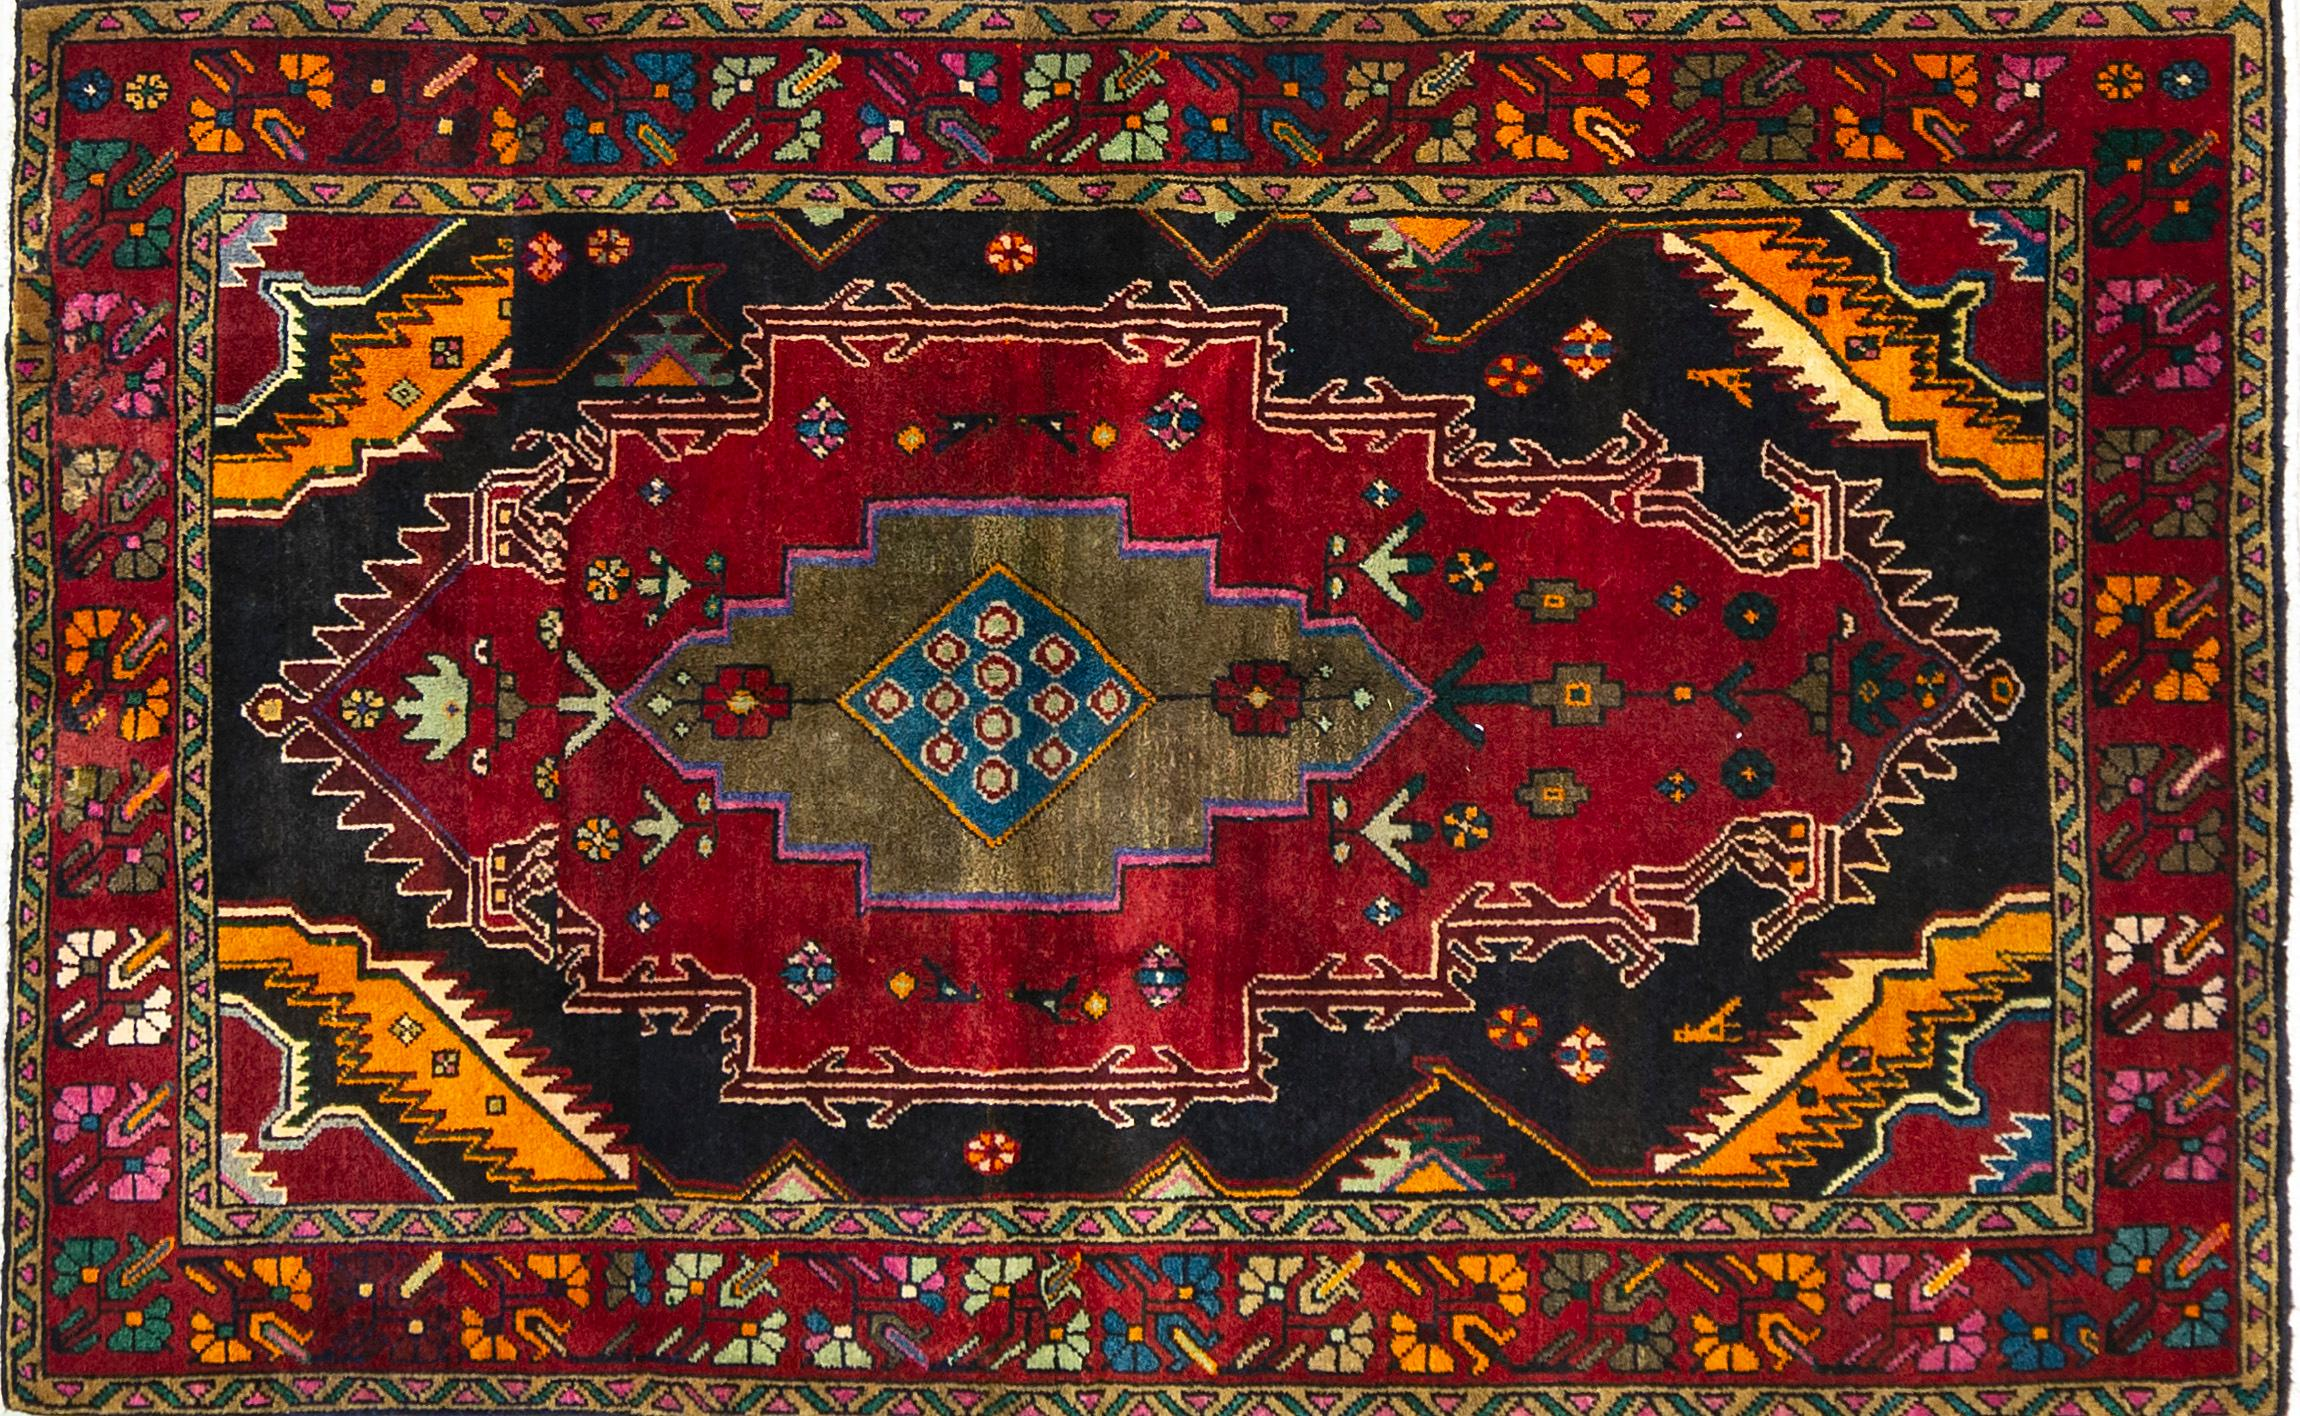 A Persian Hand Knotted Zanjan Rug, 200 x 130